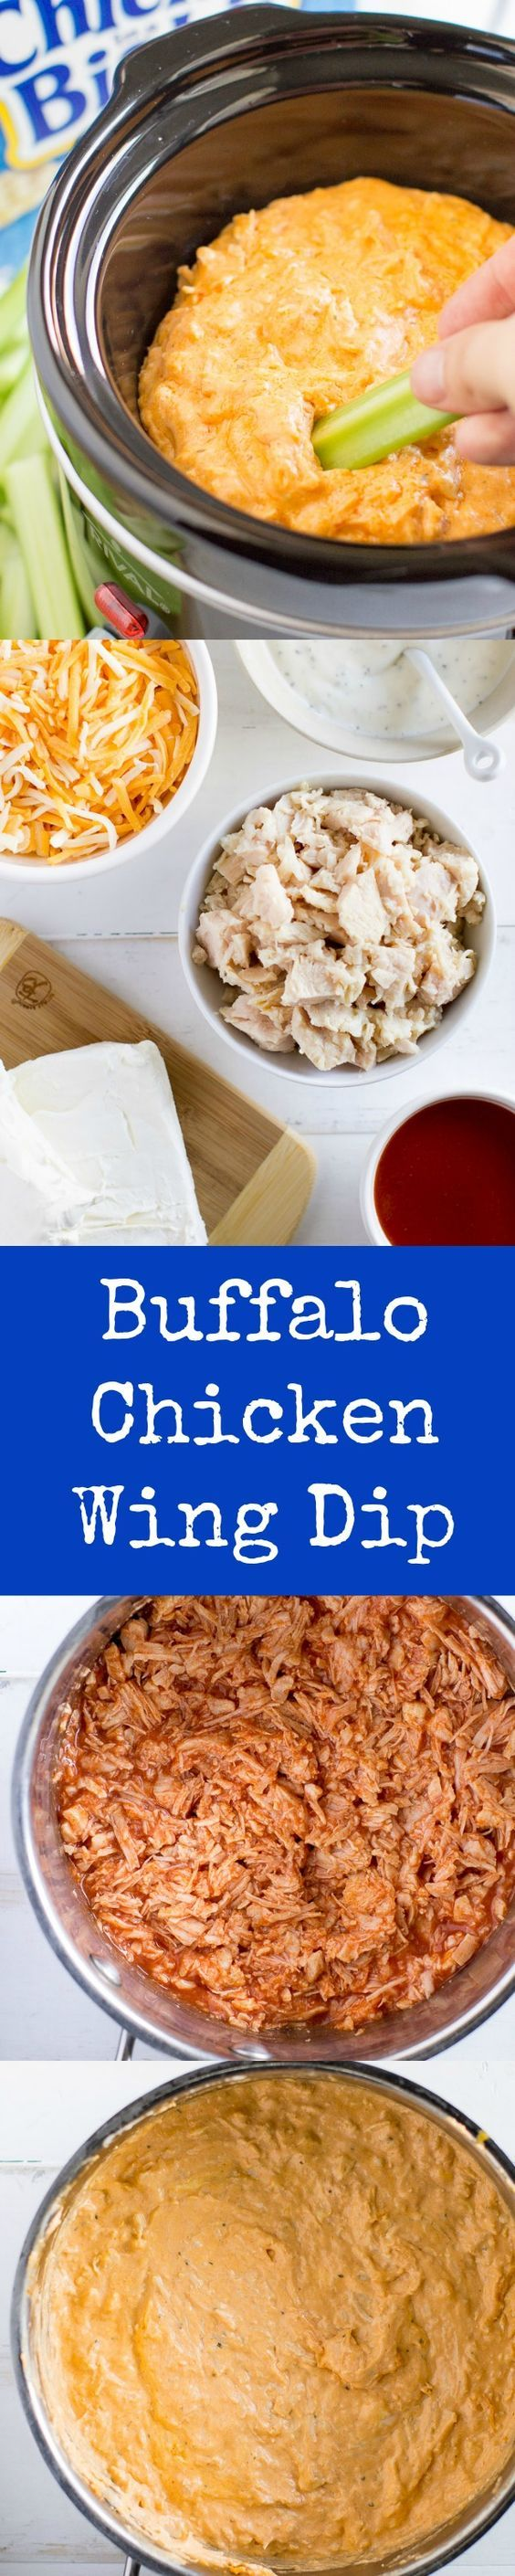 Whip up this Buffalo Chicken Wing Dip with just 5 ingredients for your next party or game day. It's hot, spicy, cool, and creamy all at once!